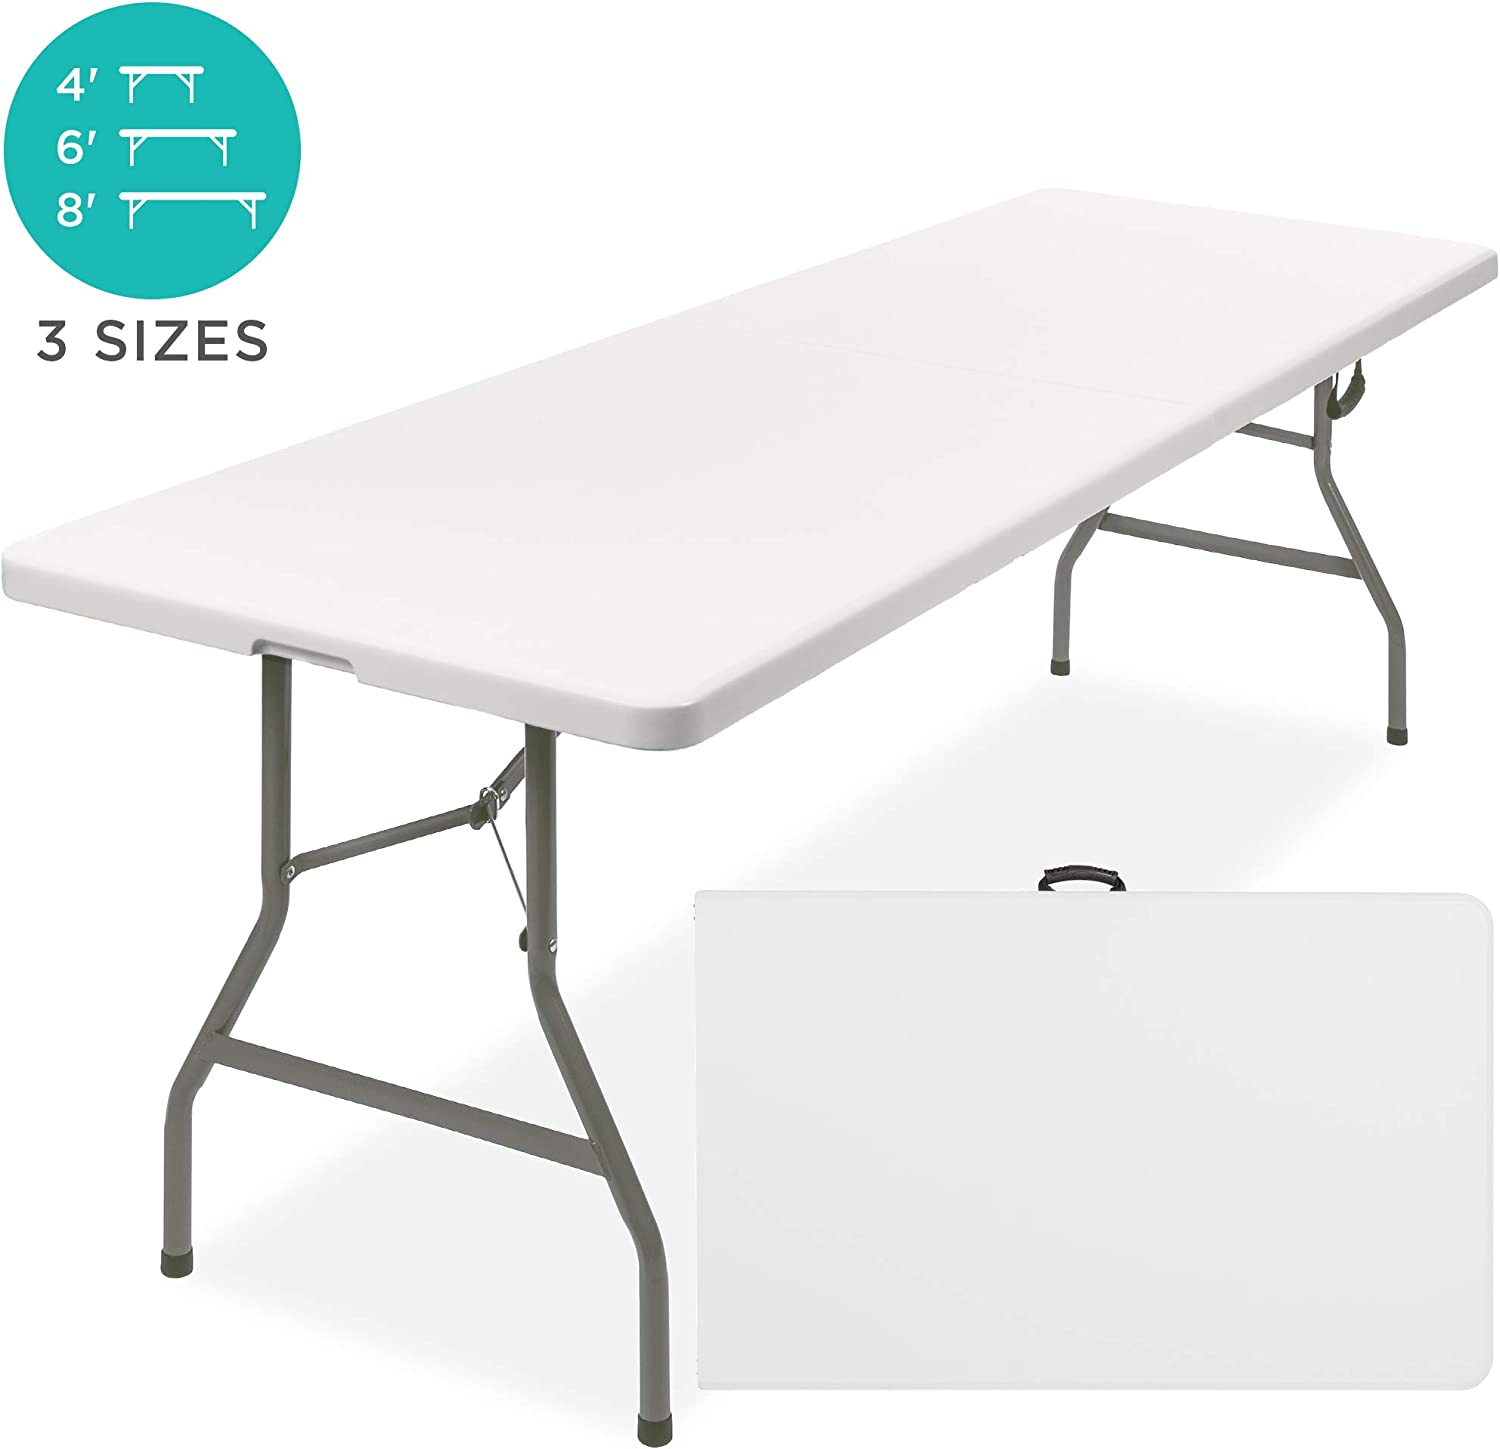 - Amazon.com: Best Choice Products 8ft Indoor Outdoor Portable Folding  Plastic Dining Table W/Handle, Lock For Picnic, Party, Camping: Garden &  Outdoor